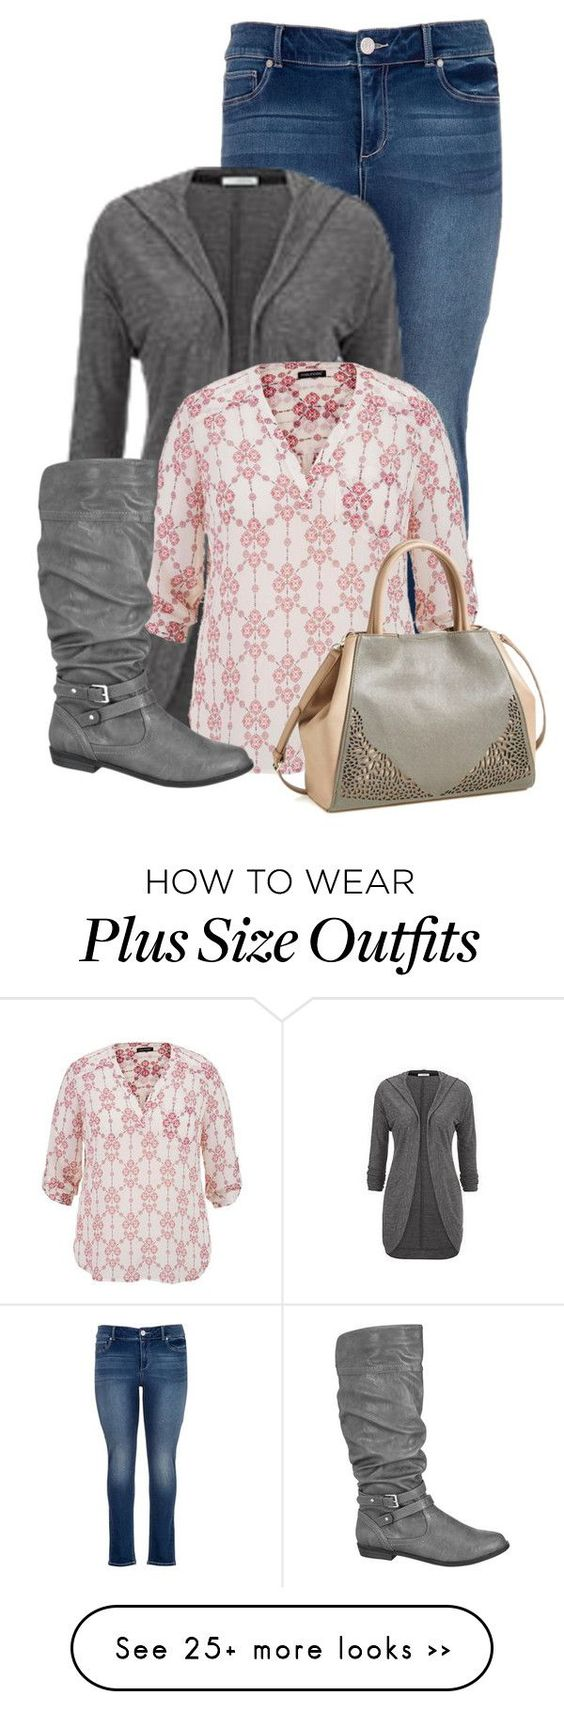 Plus size outfits - very nice.